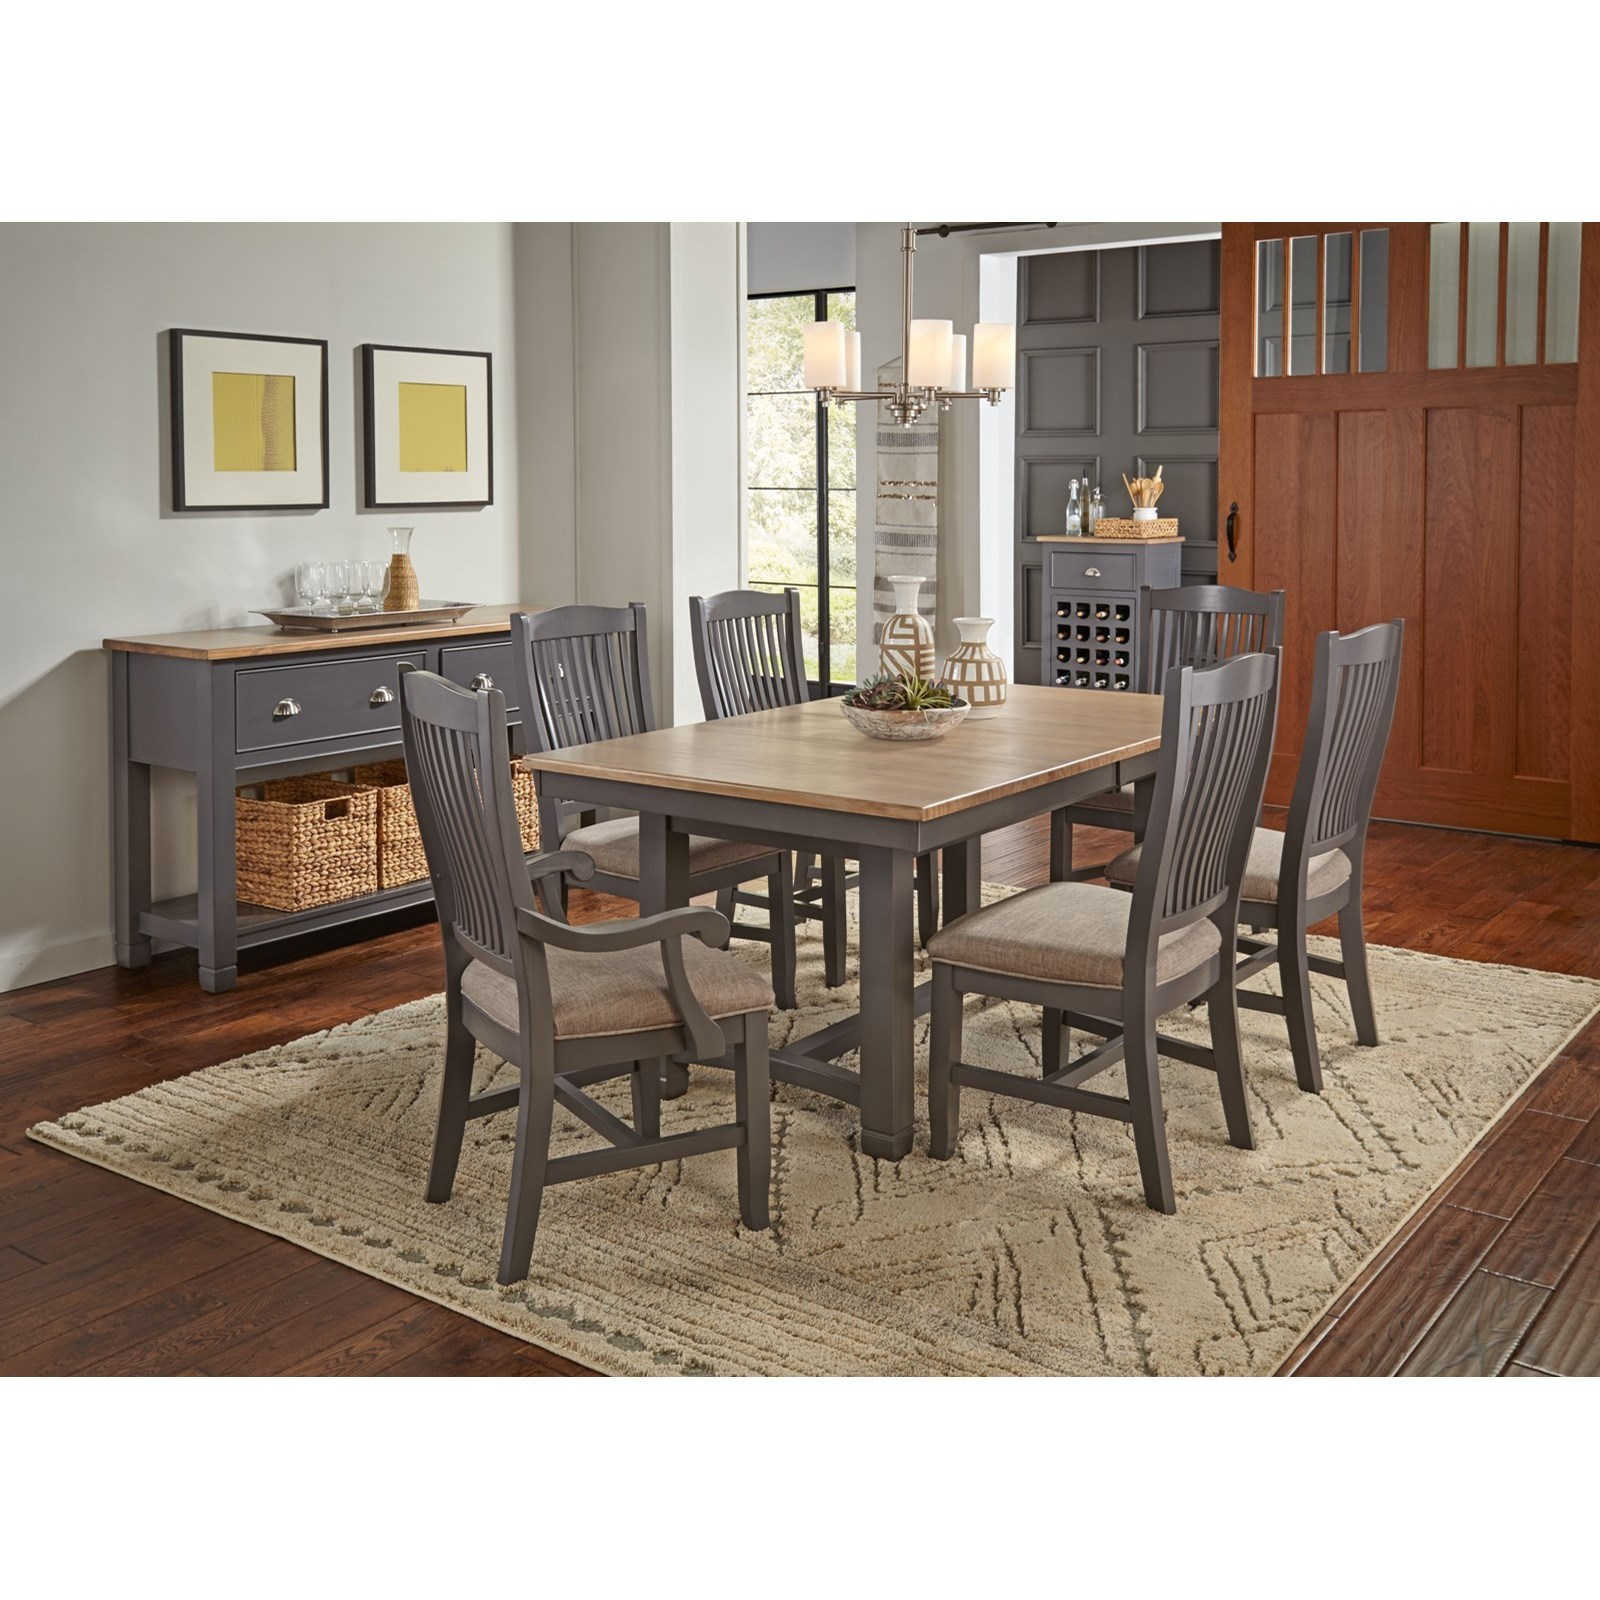 trestle dining room tables   AAmerica Port Townsend Rectangular Trestle Dining Table ...